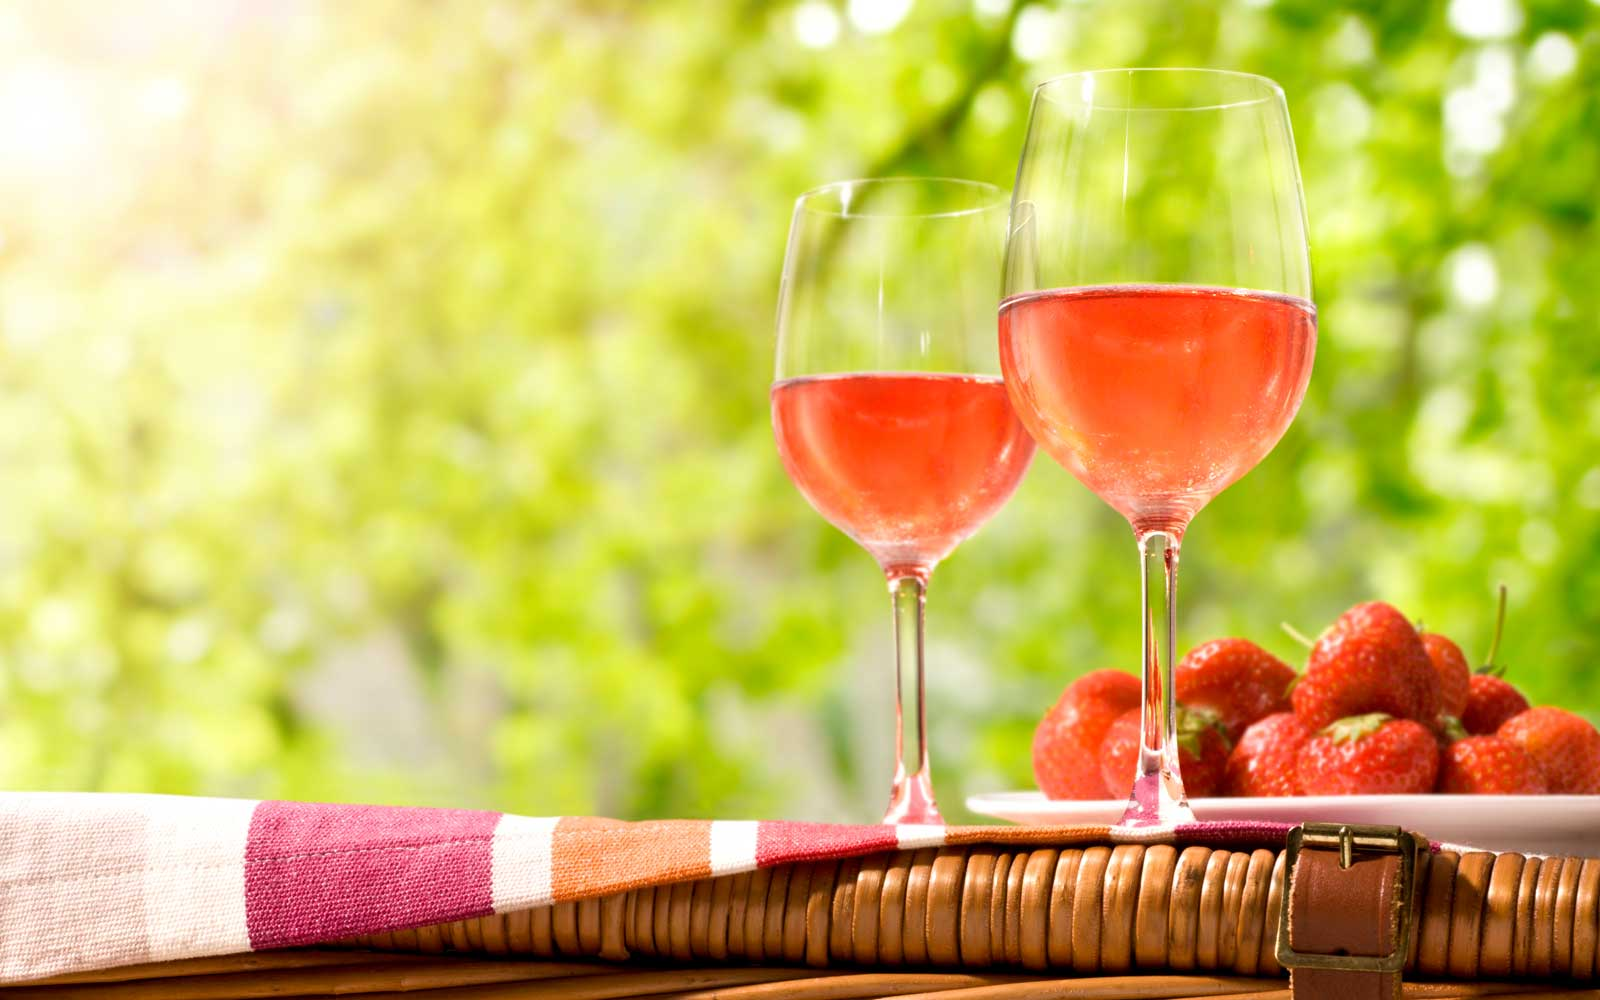 You Can Now Buy Rosé-flavored Strawberries and Raspberries